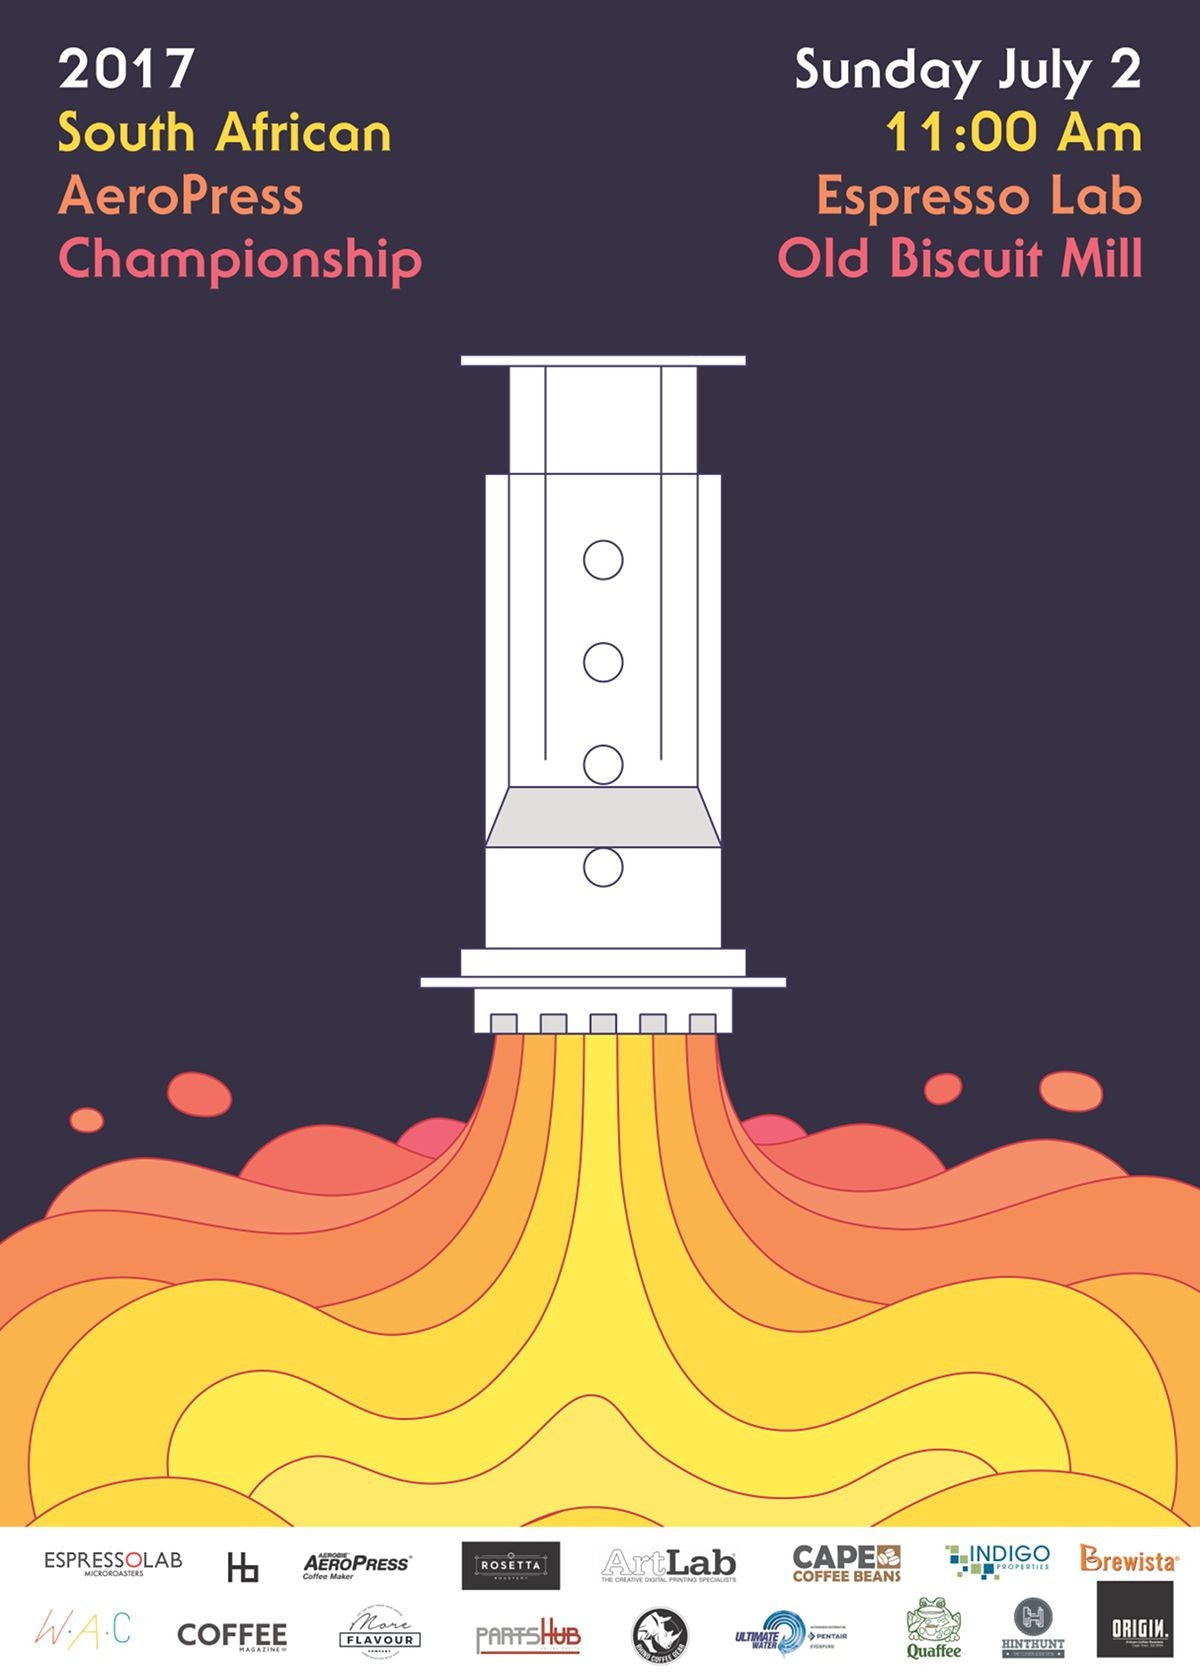 South African Aeropress Championship 2017 Poster